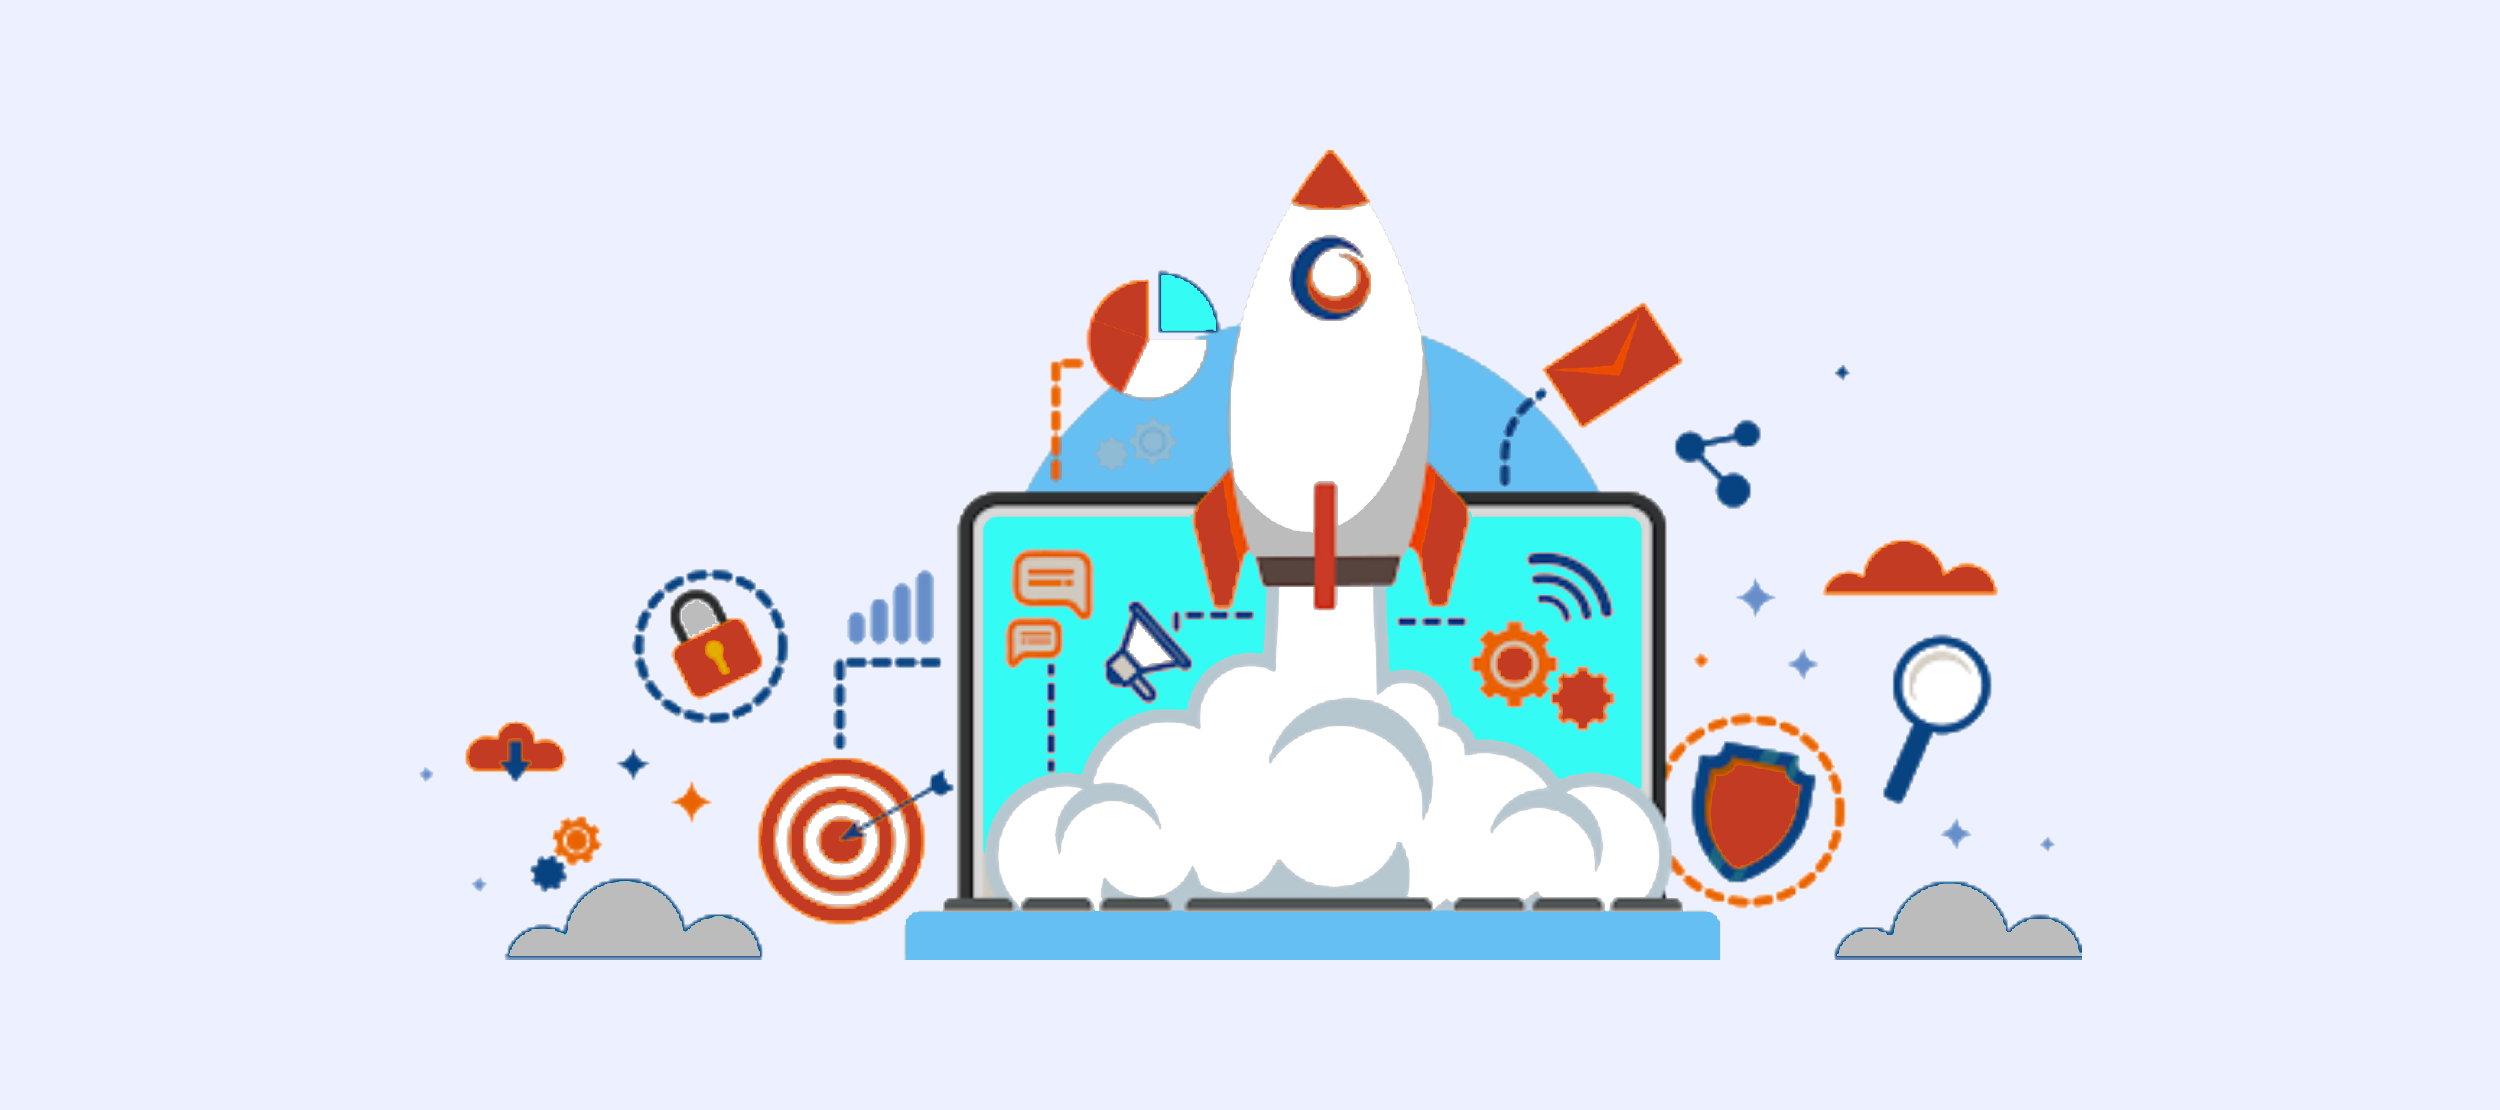 rocket coming out of a computer representing launching a business